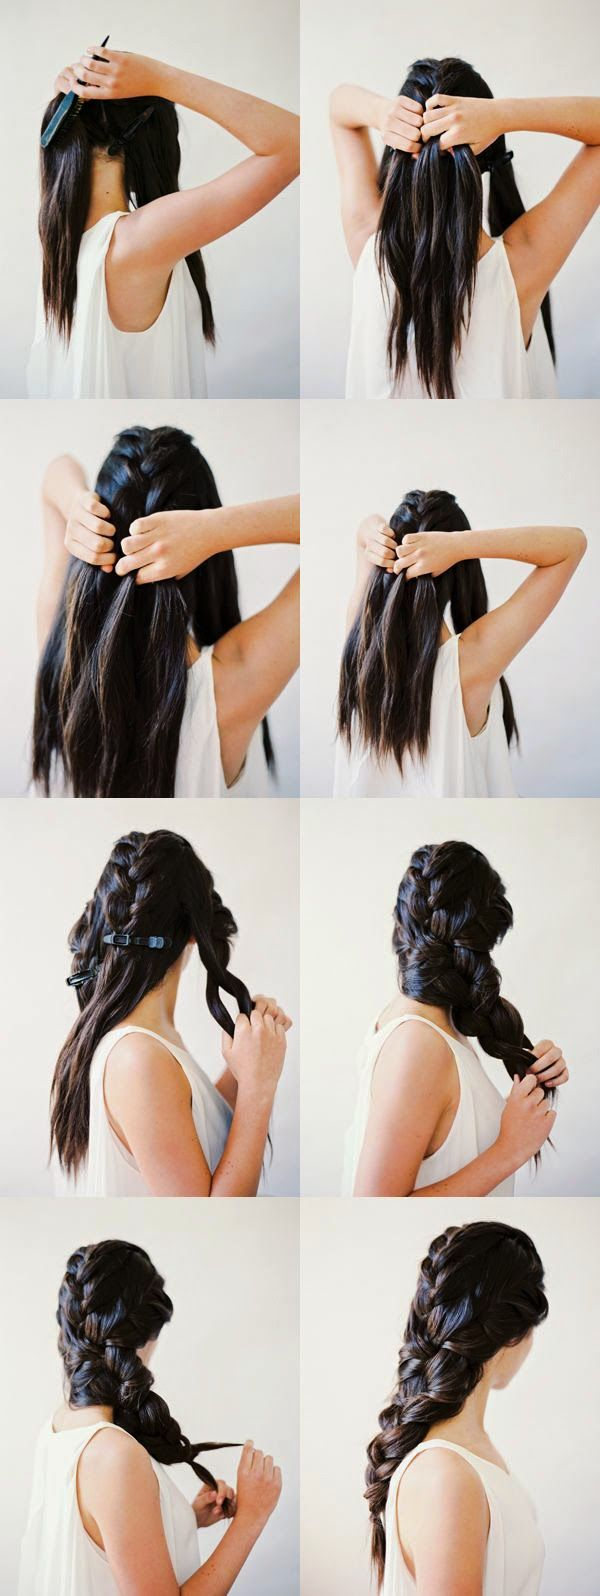 best hair styles images on pinterest hairstyles braids and make up